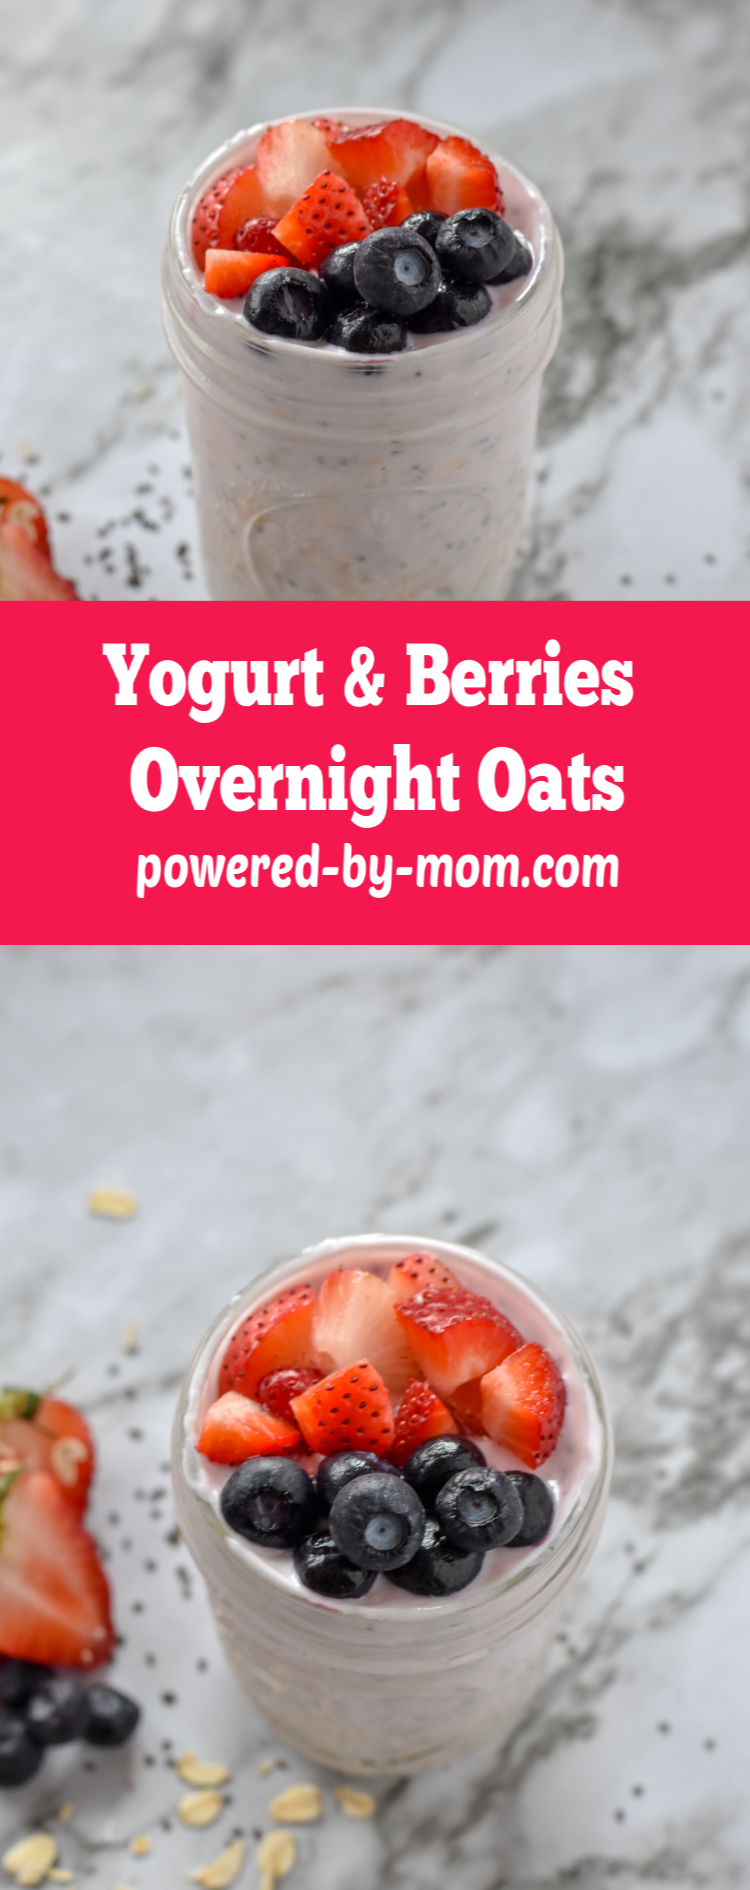 Overnight Oats with Yogurt and Berries pack tons of flavor and protein into your breakfast with only a few minutes preparation the night before! Make these today.